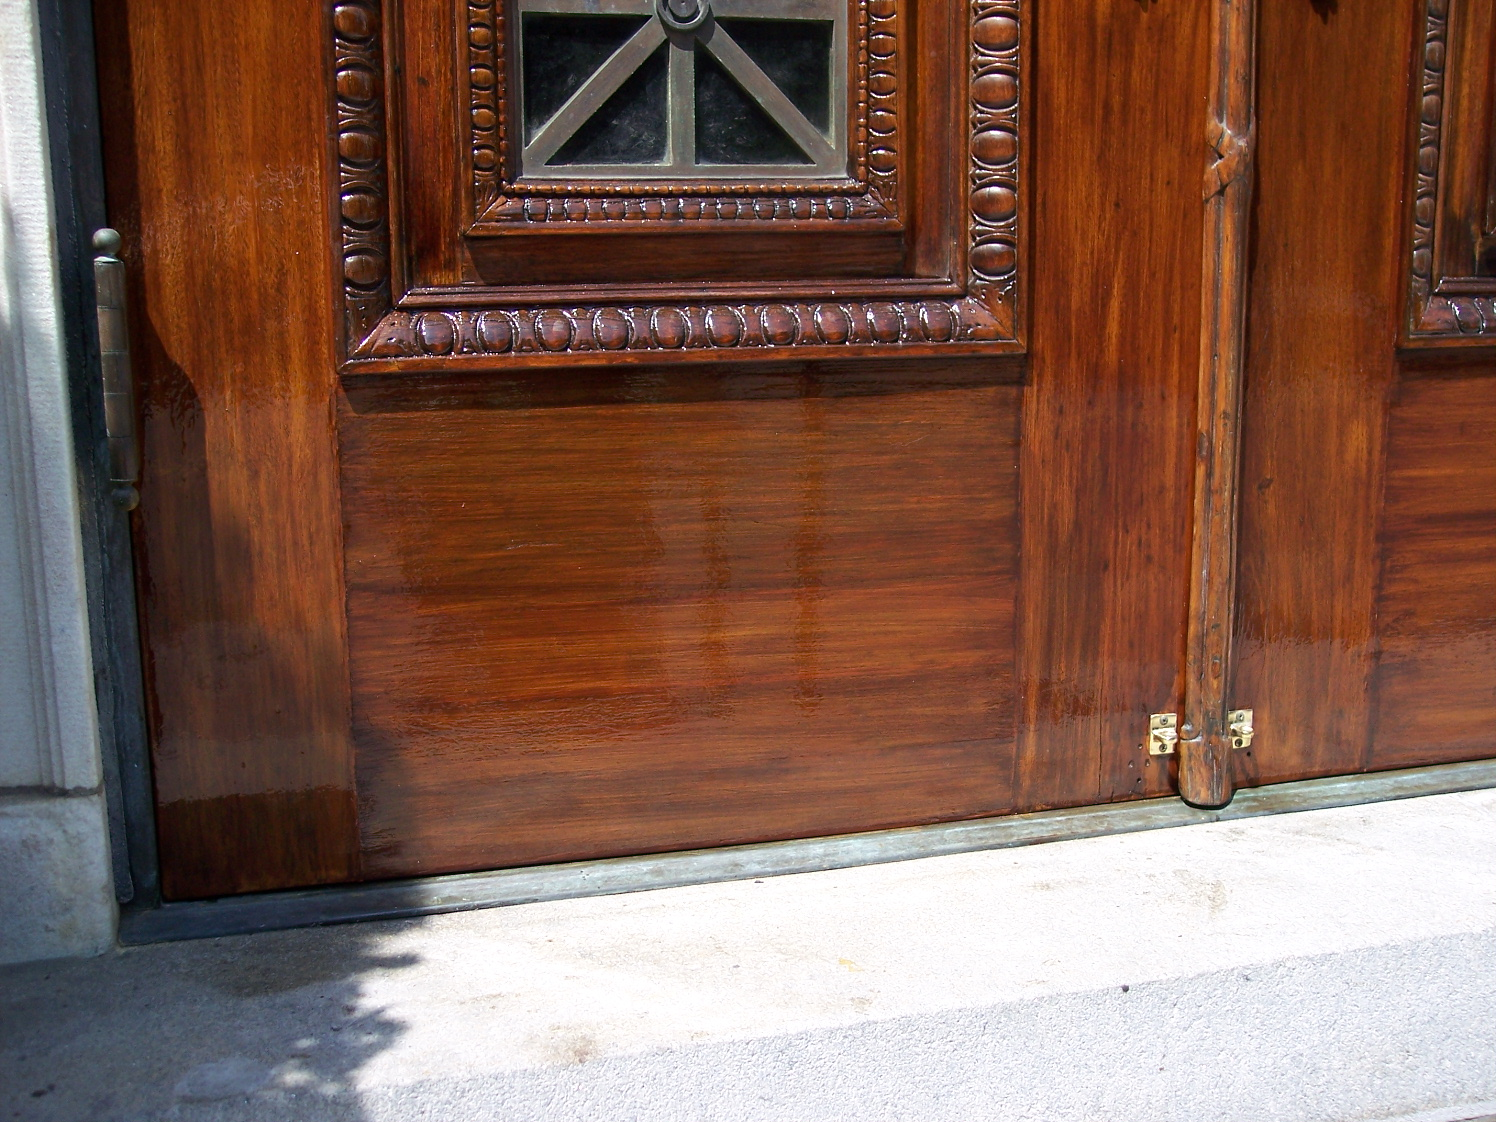 Genial ... Door Detailed After Restoration, First Church Of Christ Scientist, NYC